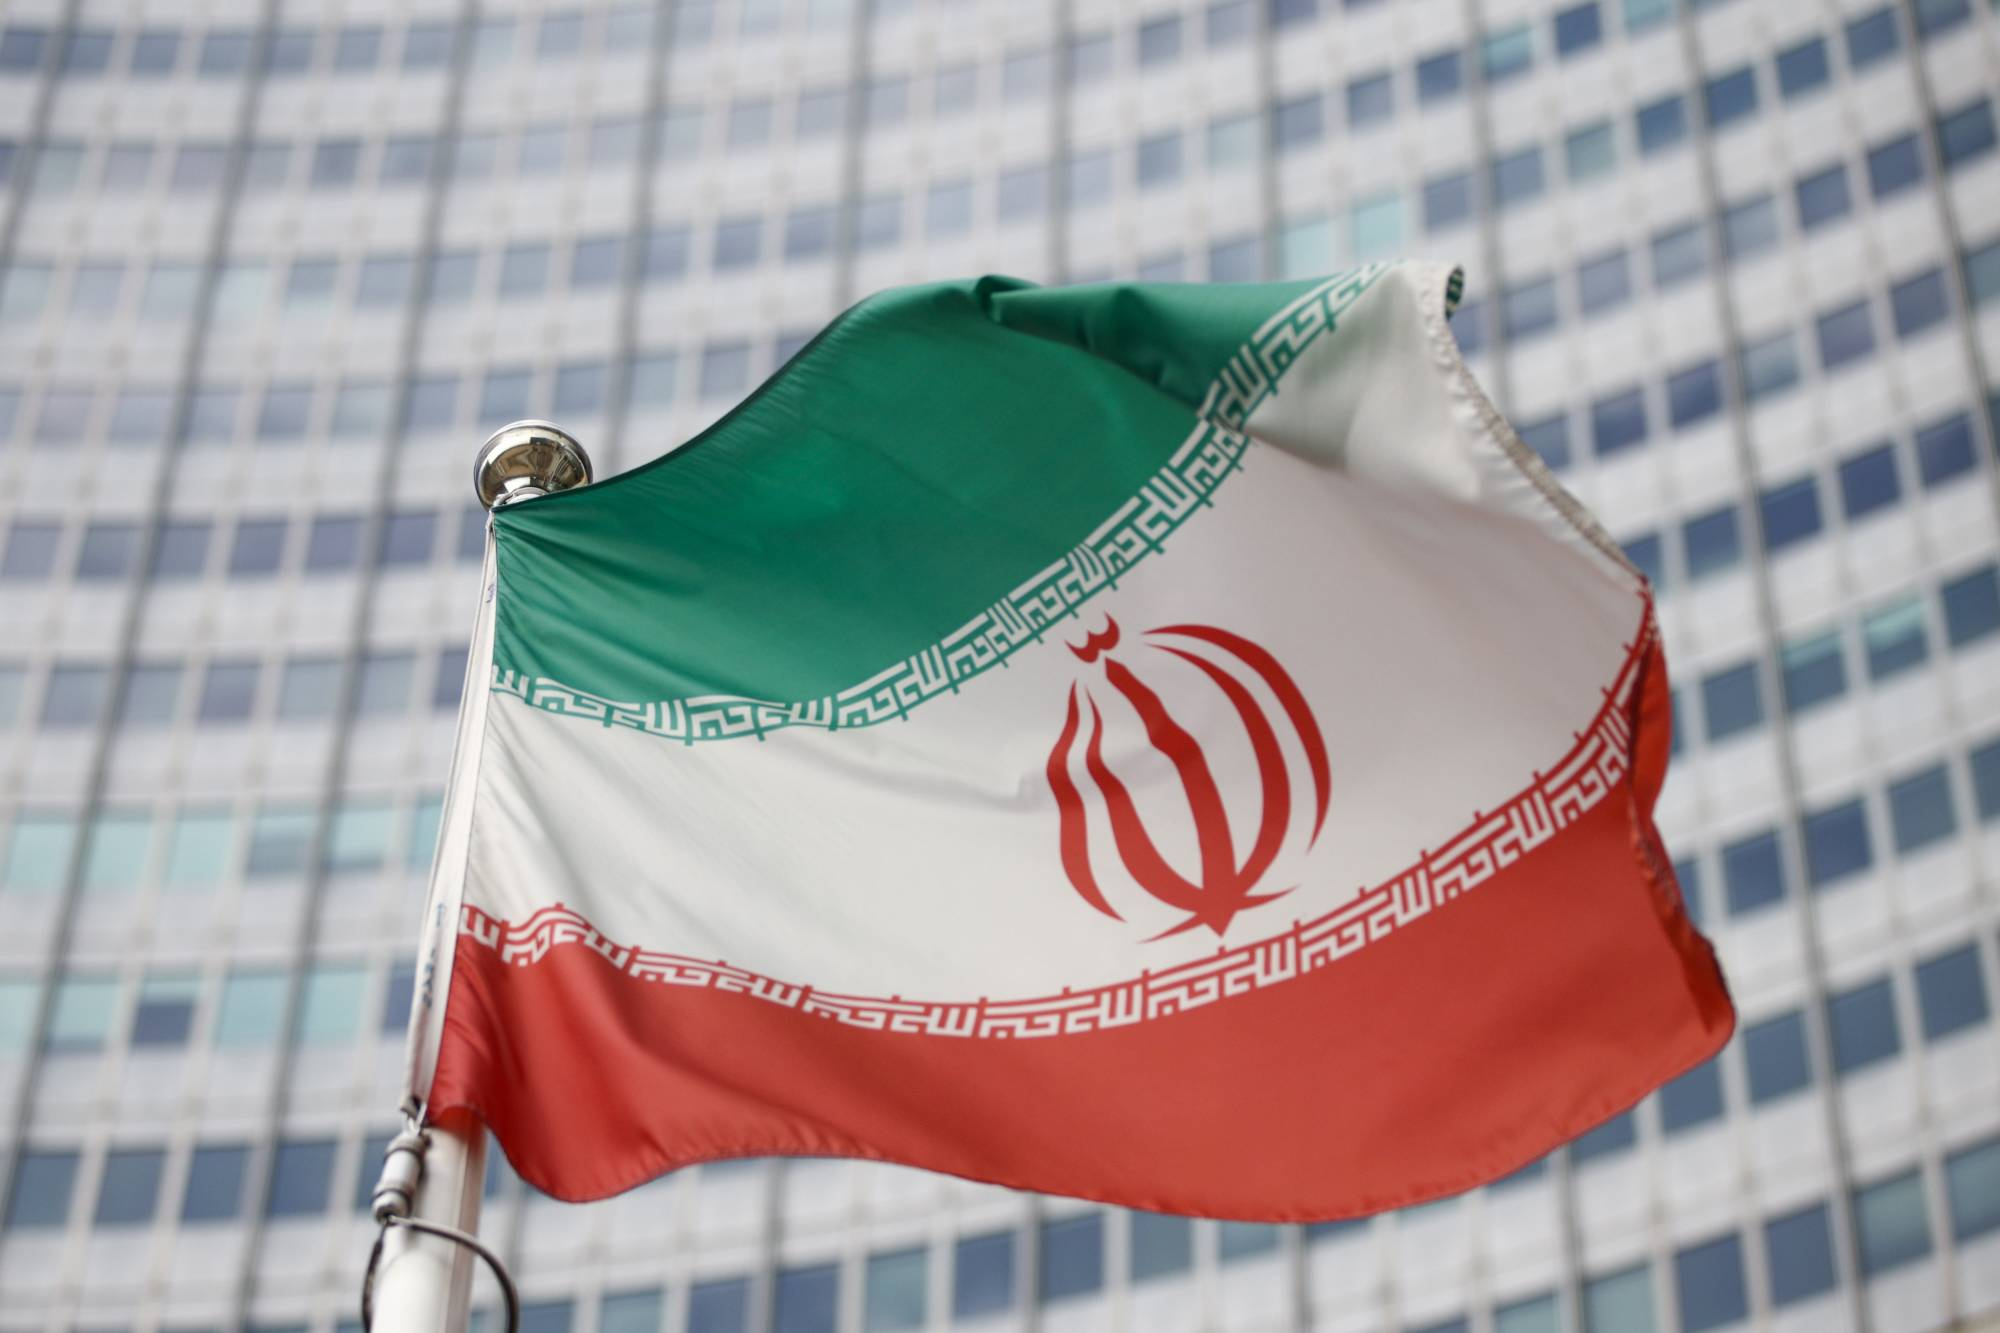 The Iranian flag waves in front of the International Atomic Energy Agency's headquarters in Vienna on March 1. The United States said Friday it offered 'very serious' ideas on reviving the Iran nuclear accord but was waiting for Tehran to reciprocate as partner nations voiced optimism following talks in Vienna. | REUTERS